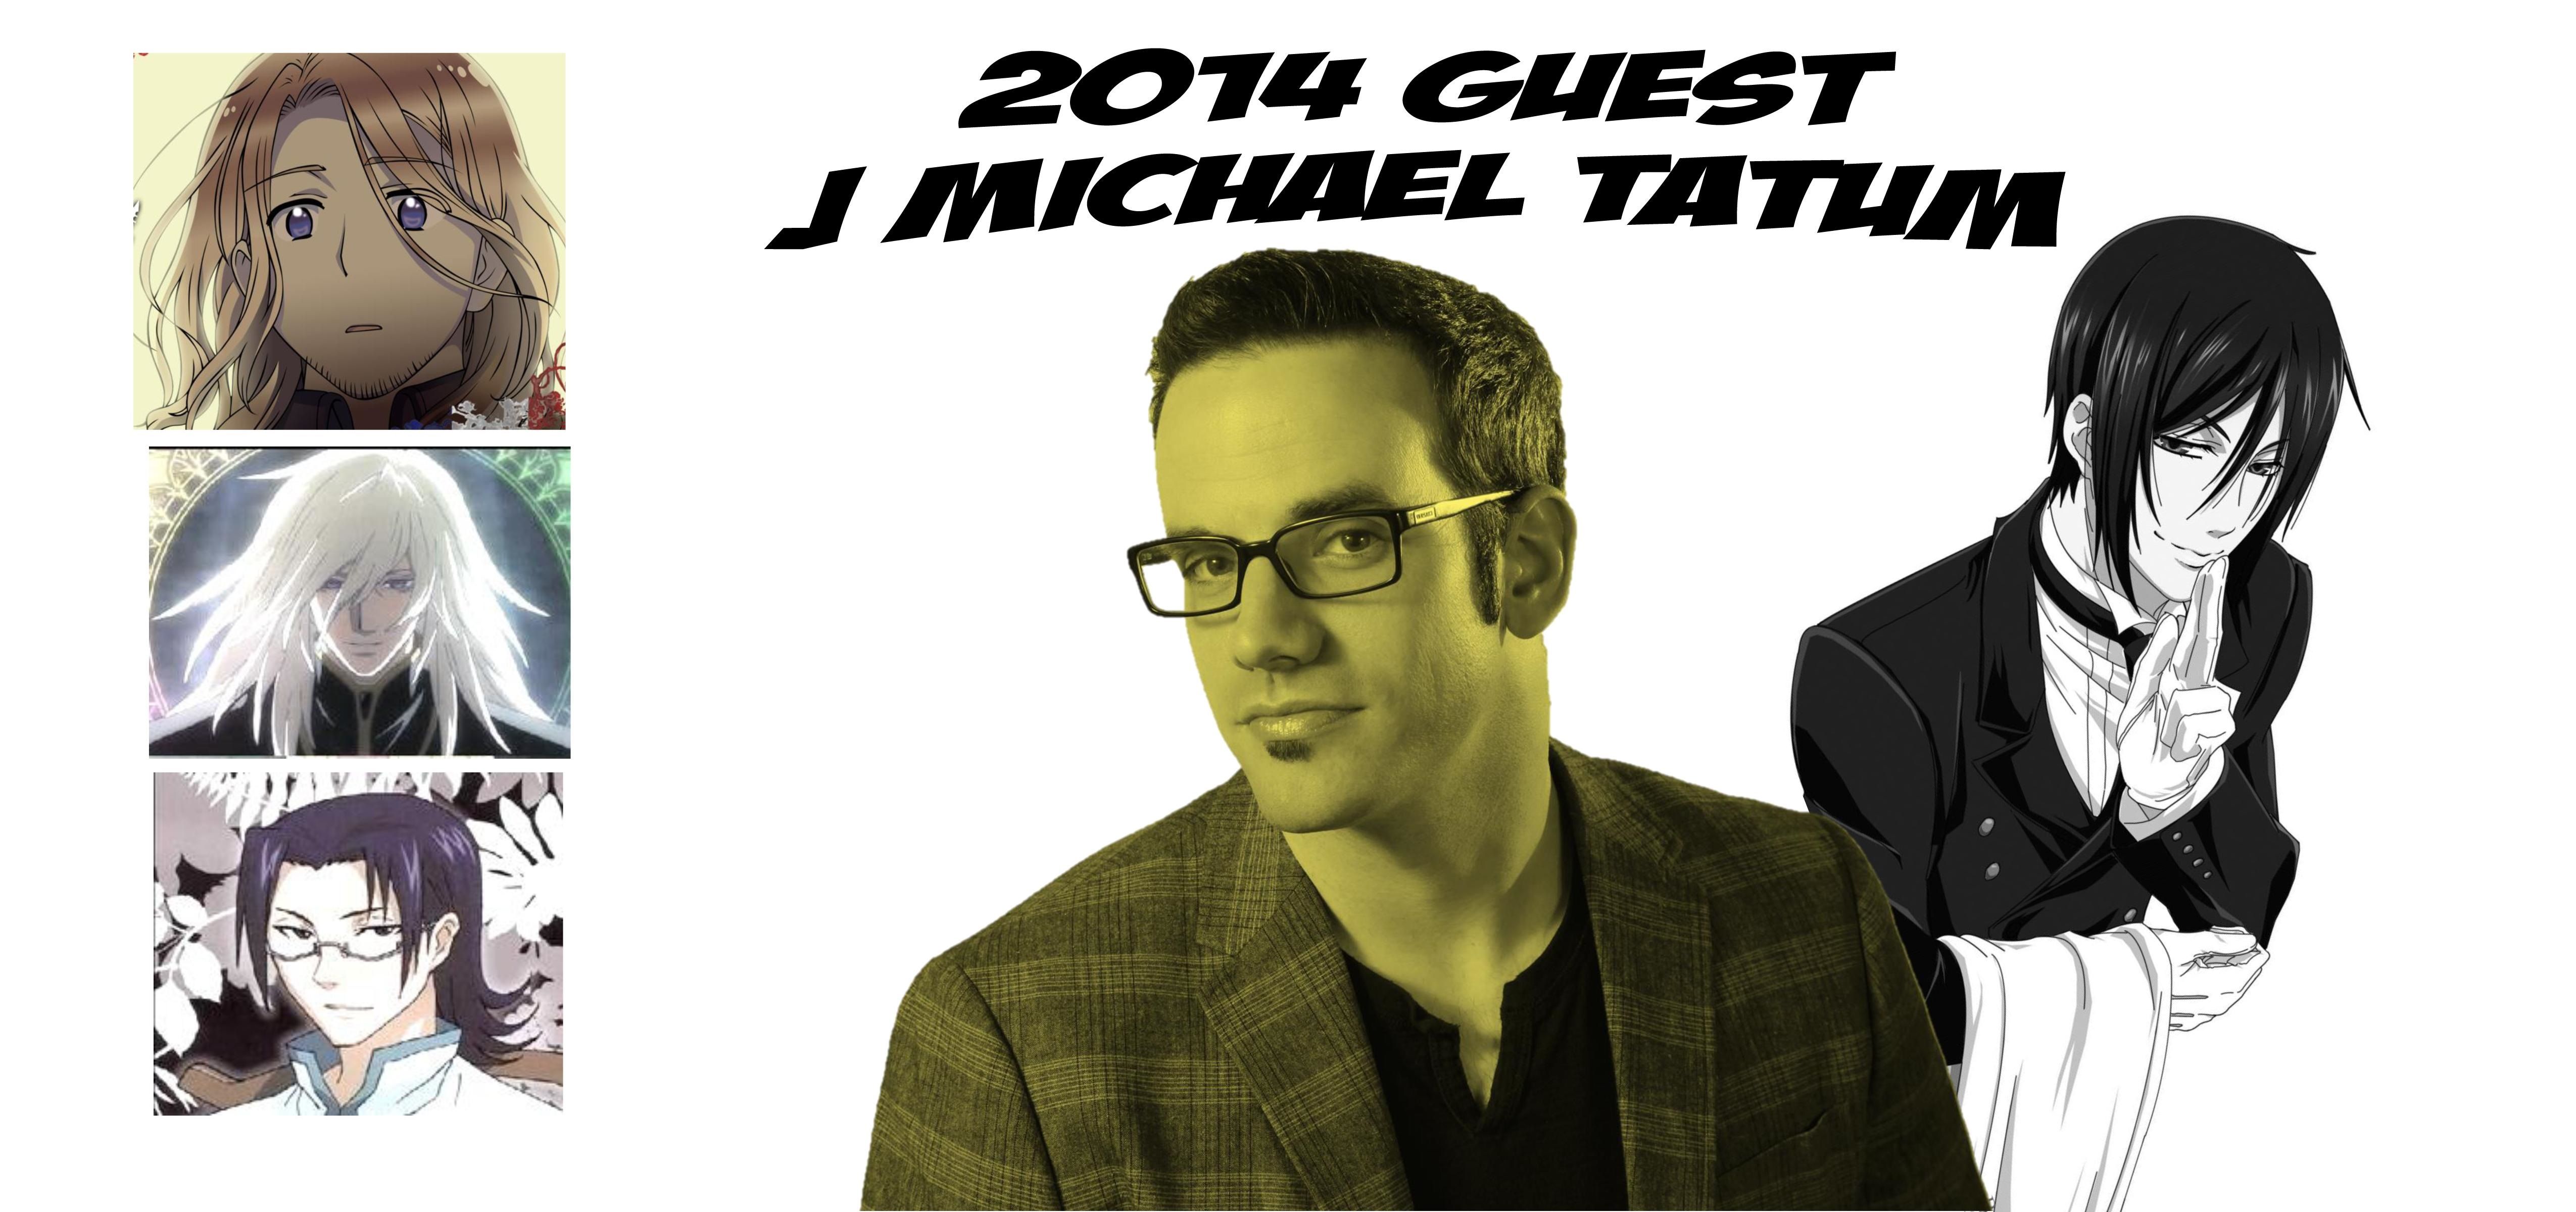 J Michael Tatum  242 Character Images  Behind The Voice